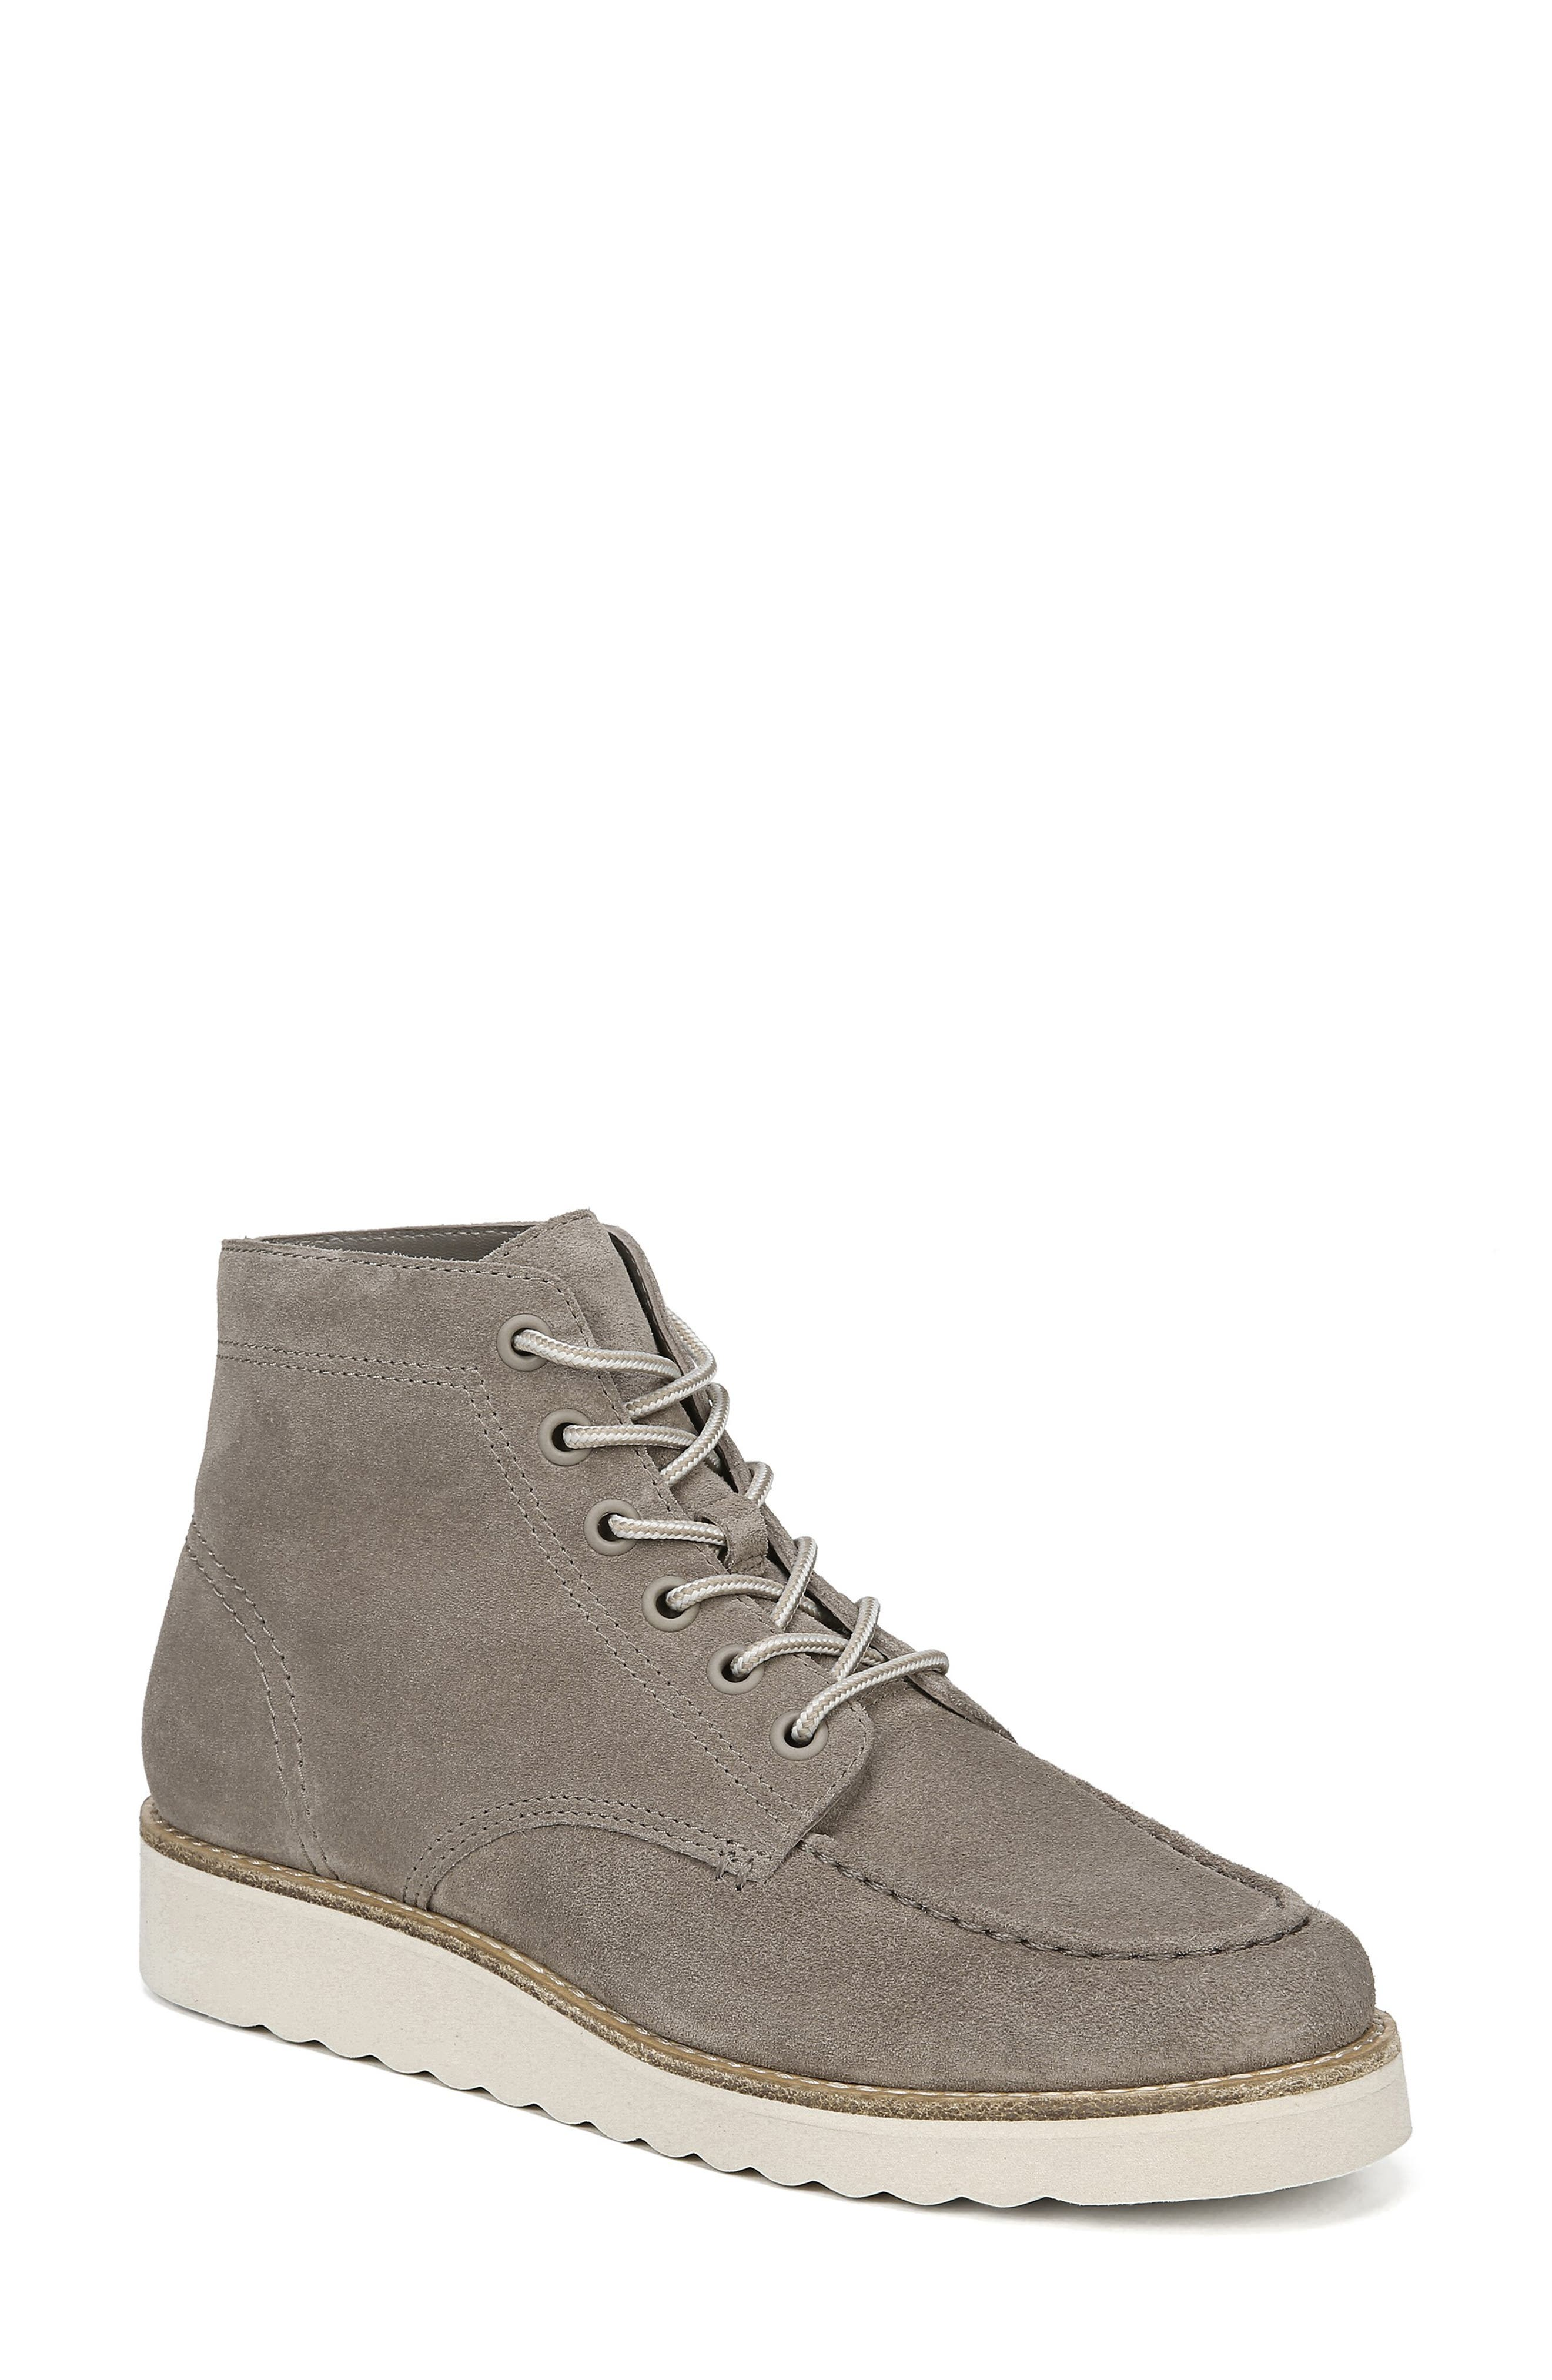 Finley Platform Boot With Genuine Shearling Lining in Light Woodsmoke Suede